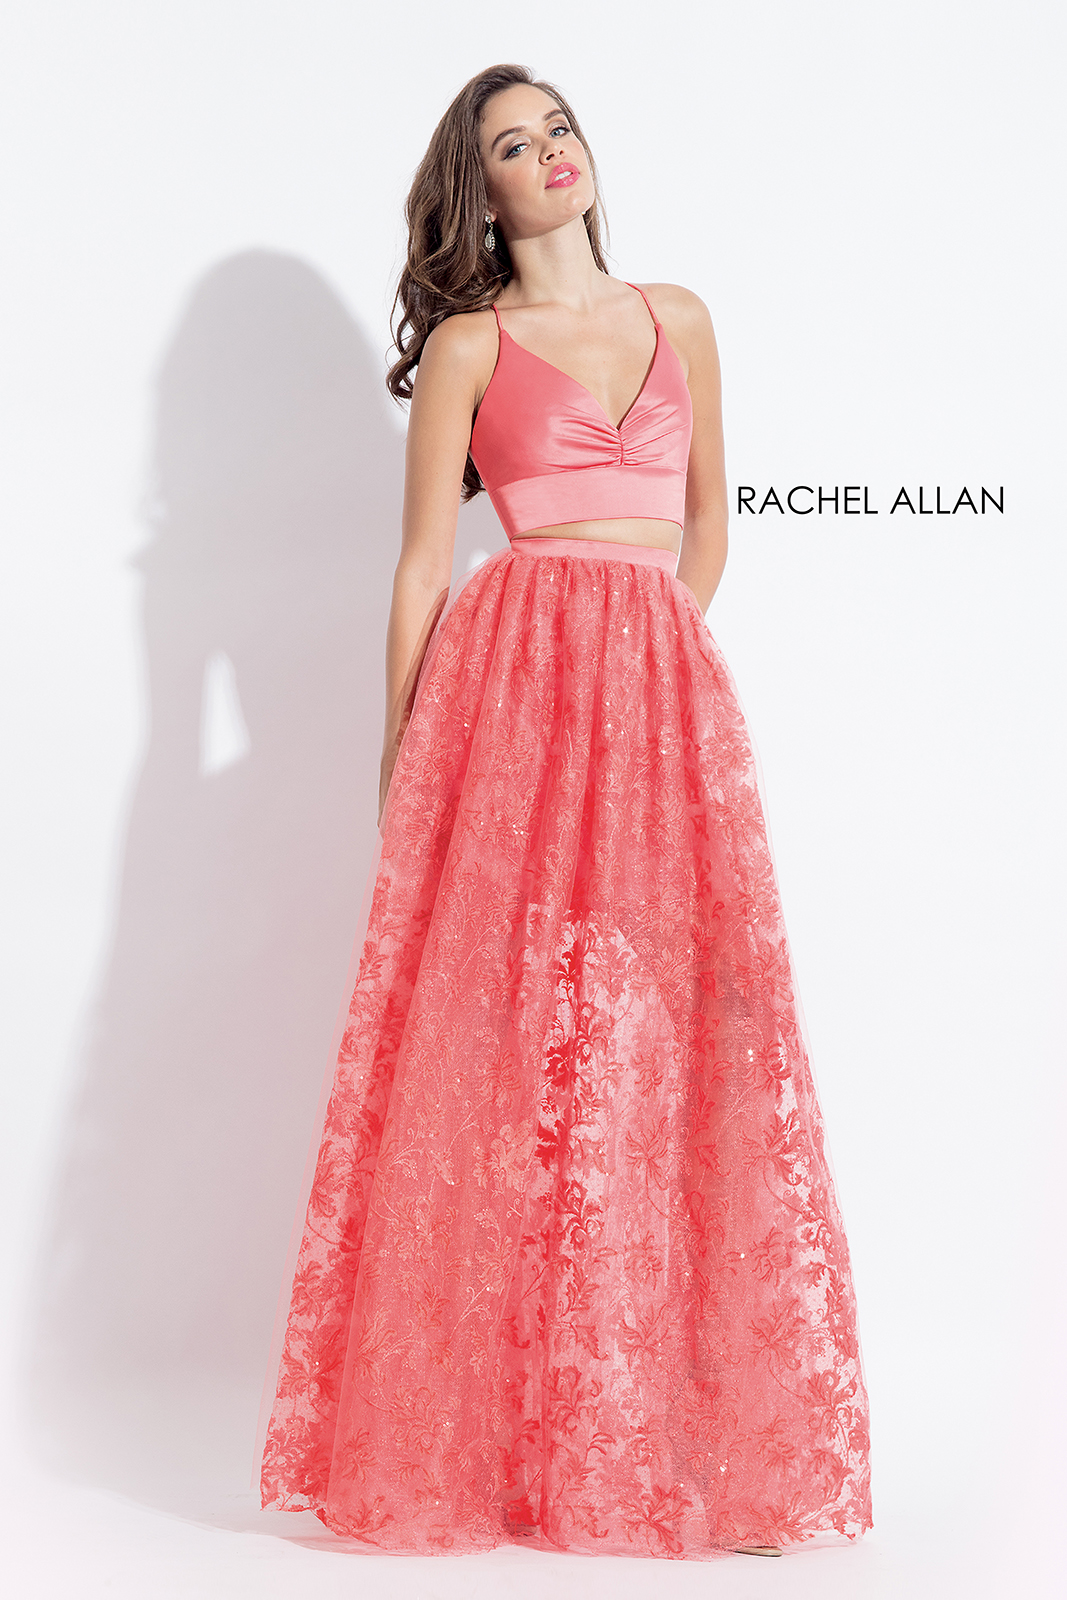 V-Neck Two-Piece Prom Dresses in Coral Color